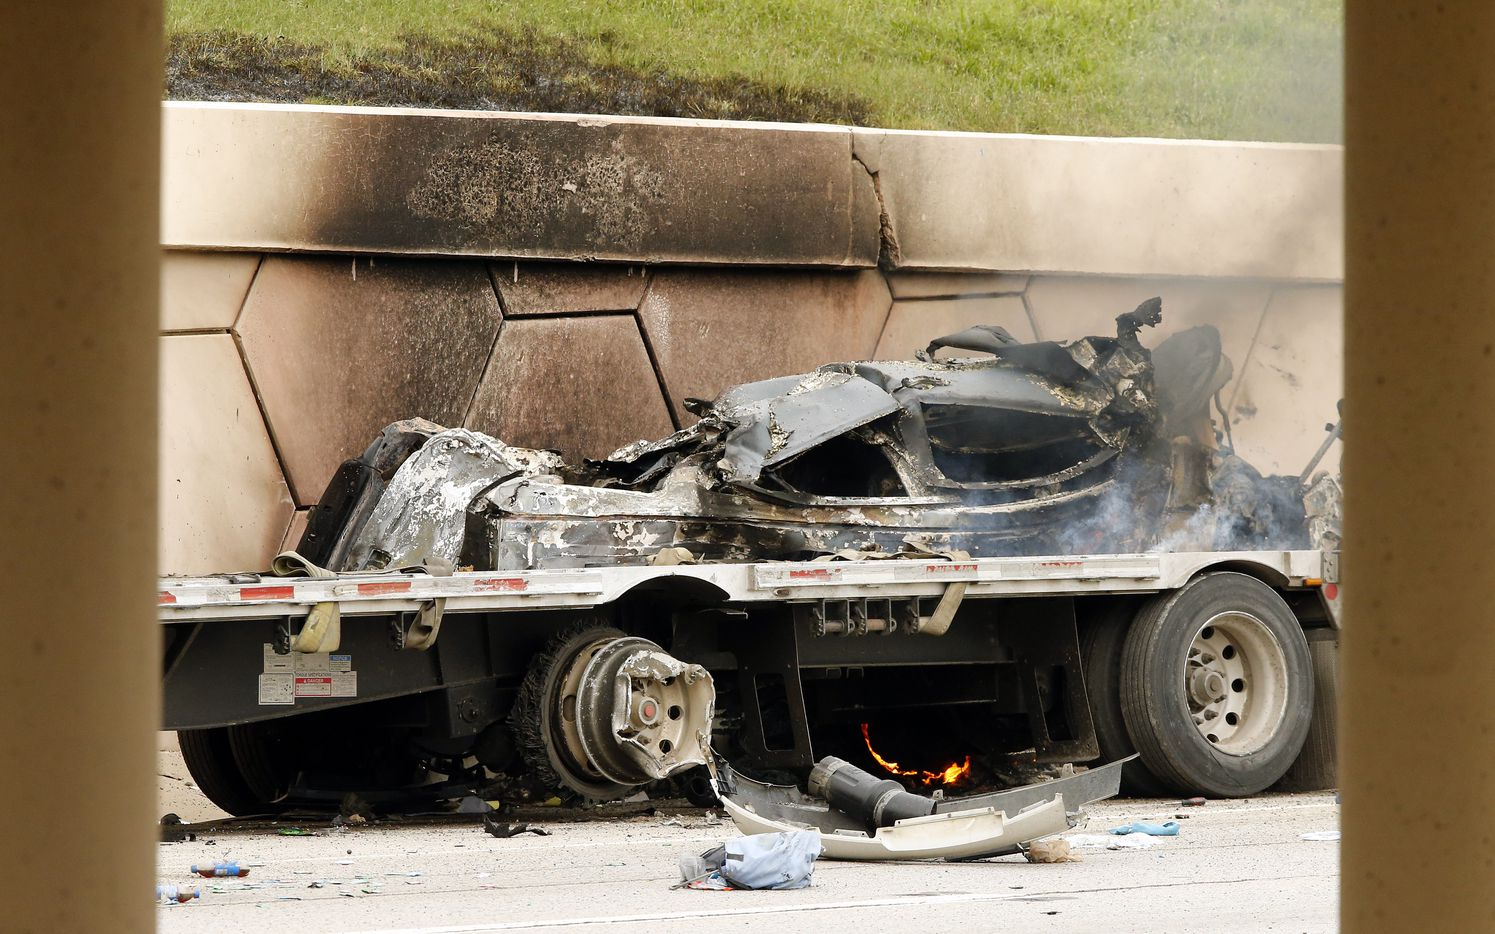 A burned out vehicle is pinned against the wall by a semi truck after it crashed following a high speed chase on Interstate-30 near Cooper St. in Arlington  Friday, June 9, 2017. The driver of the vehicle escpaed before the car burned.